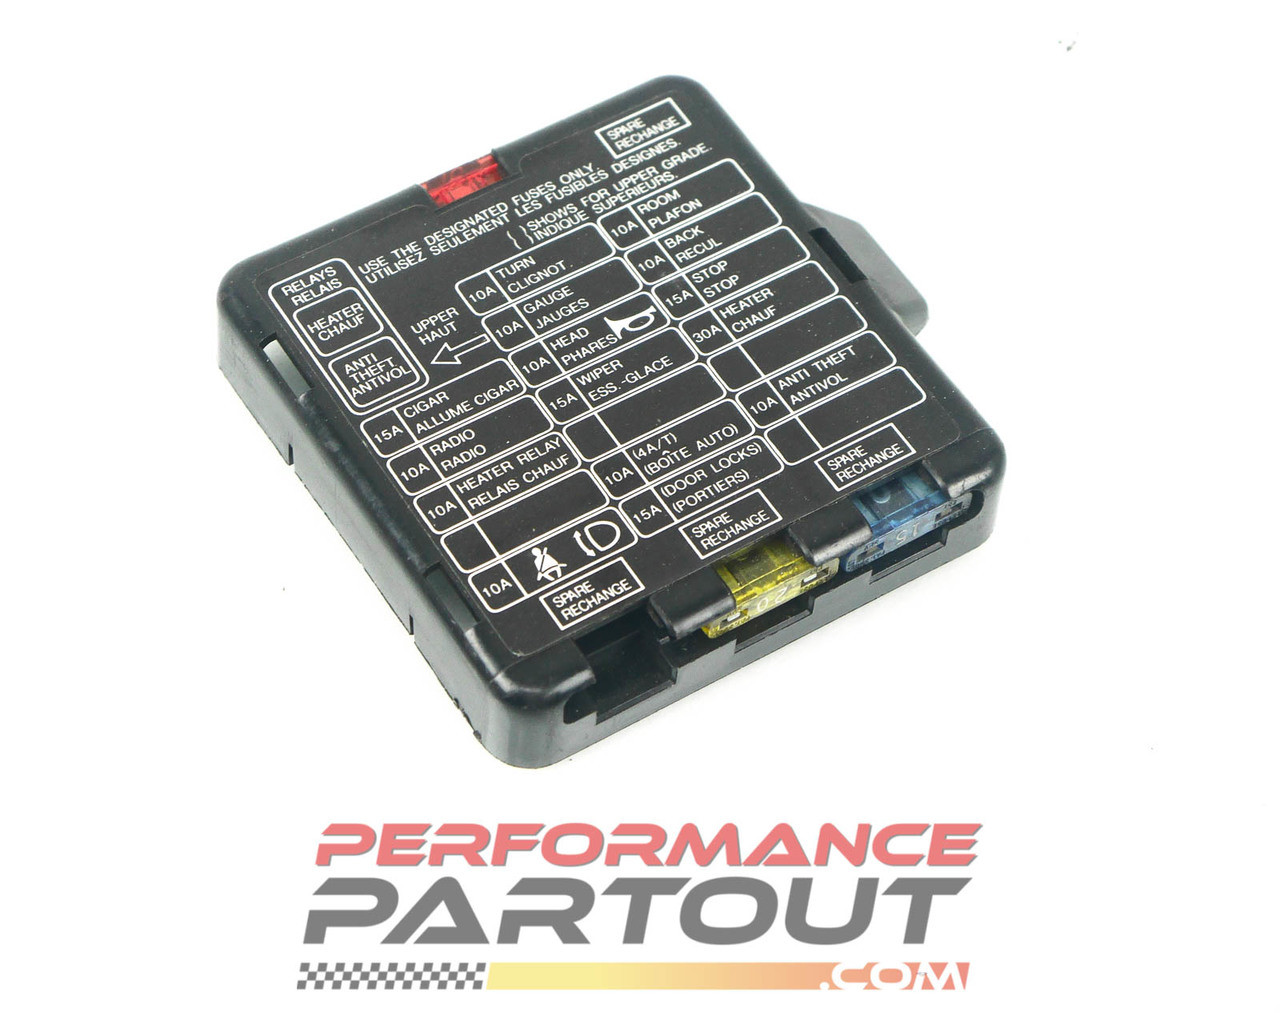 medium resolution of fuse box cover interior 90 94 dsm performance partout this is a fuse box cover from 90